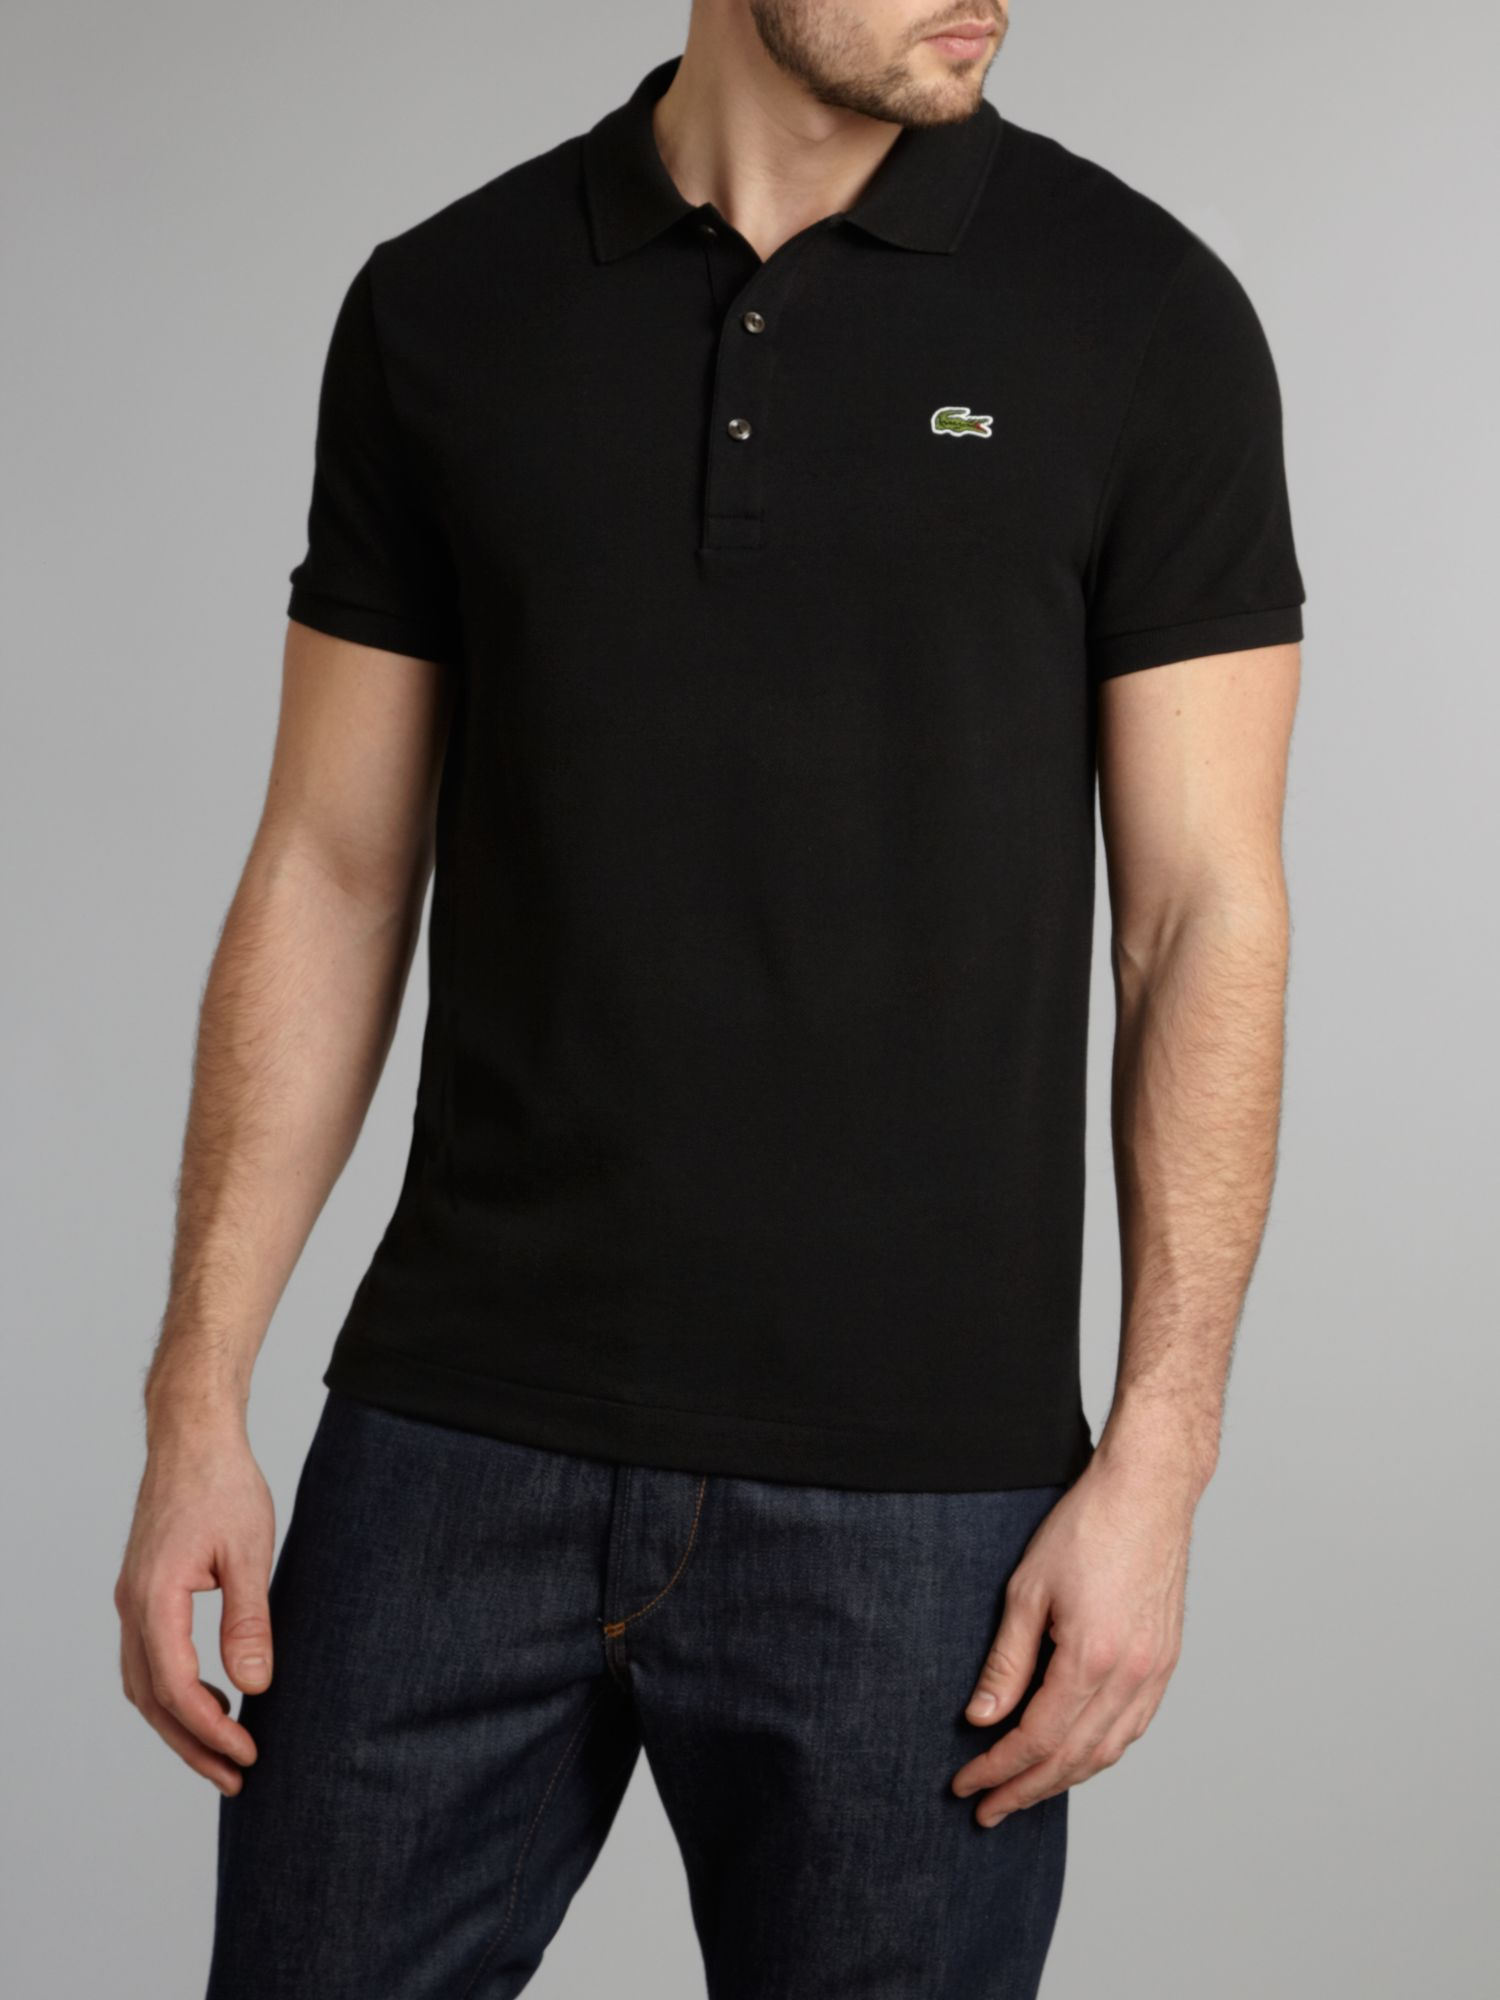 Lacoste classic slim fitted polo shirt in black for men lyst for Black fitted polo shirt